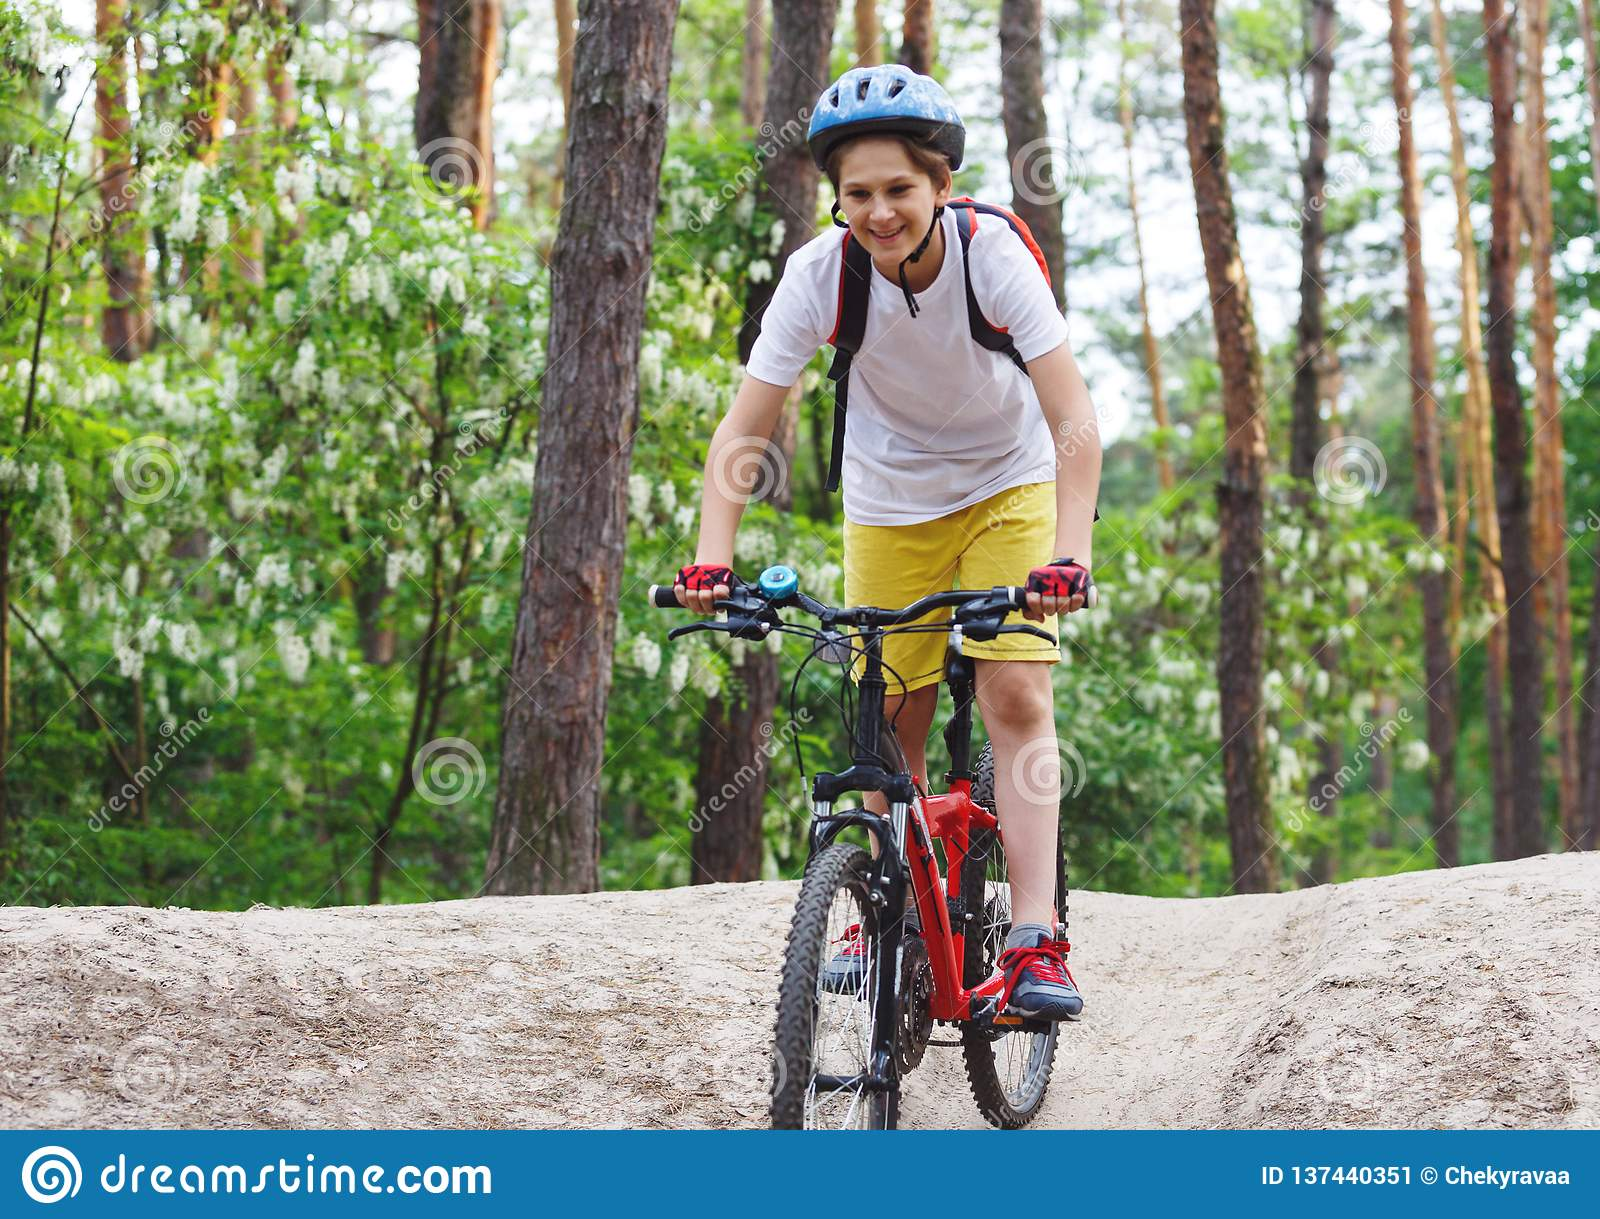 Child teenager in white t shirt and yellow shorts on bicycle ride in forest at spring or summer. Happy smiling Boy cycling